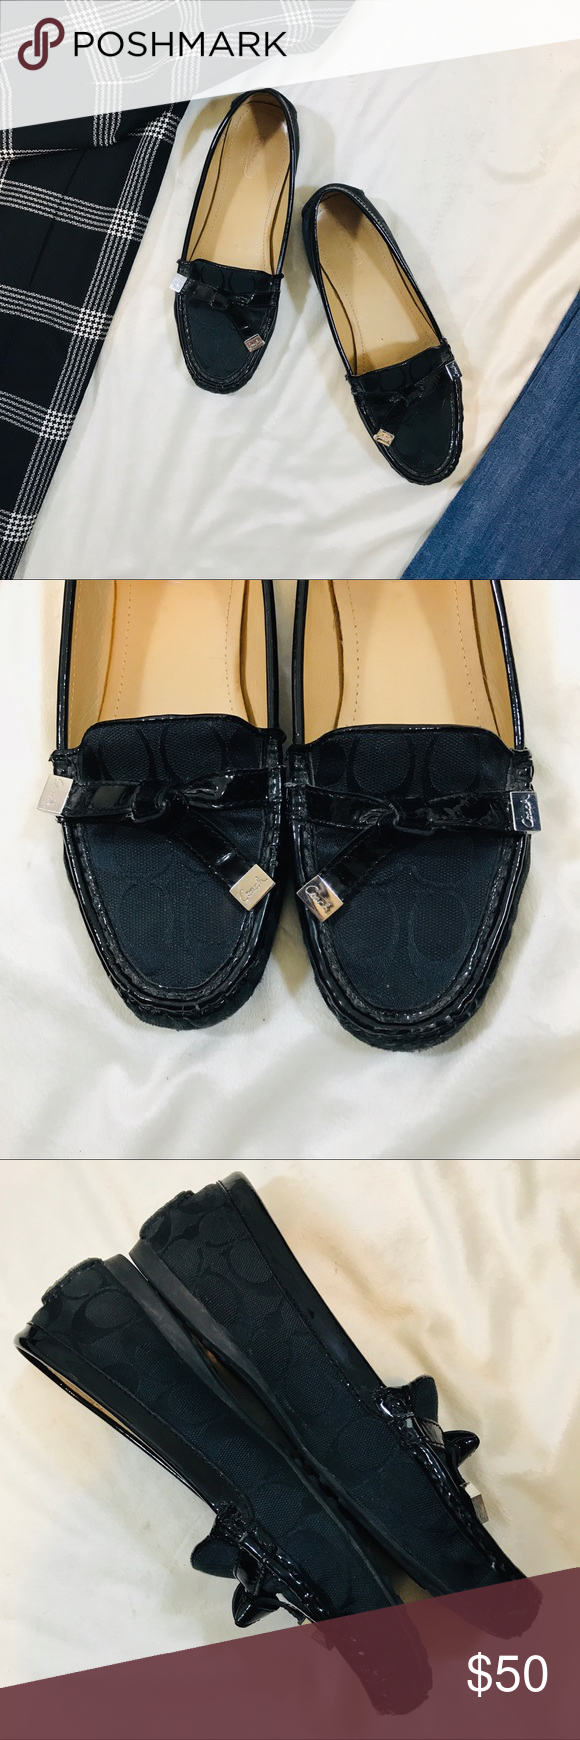 58aabfe18915de Coach Frida Black Loafer Coach Size 8 Black c pattern loader with patent  leather accents Classic